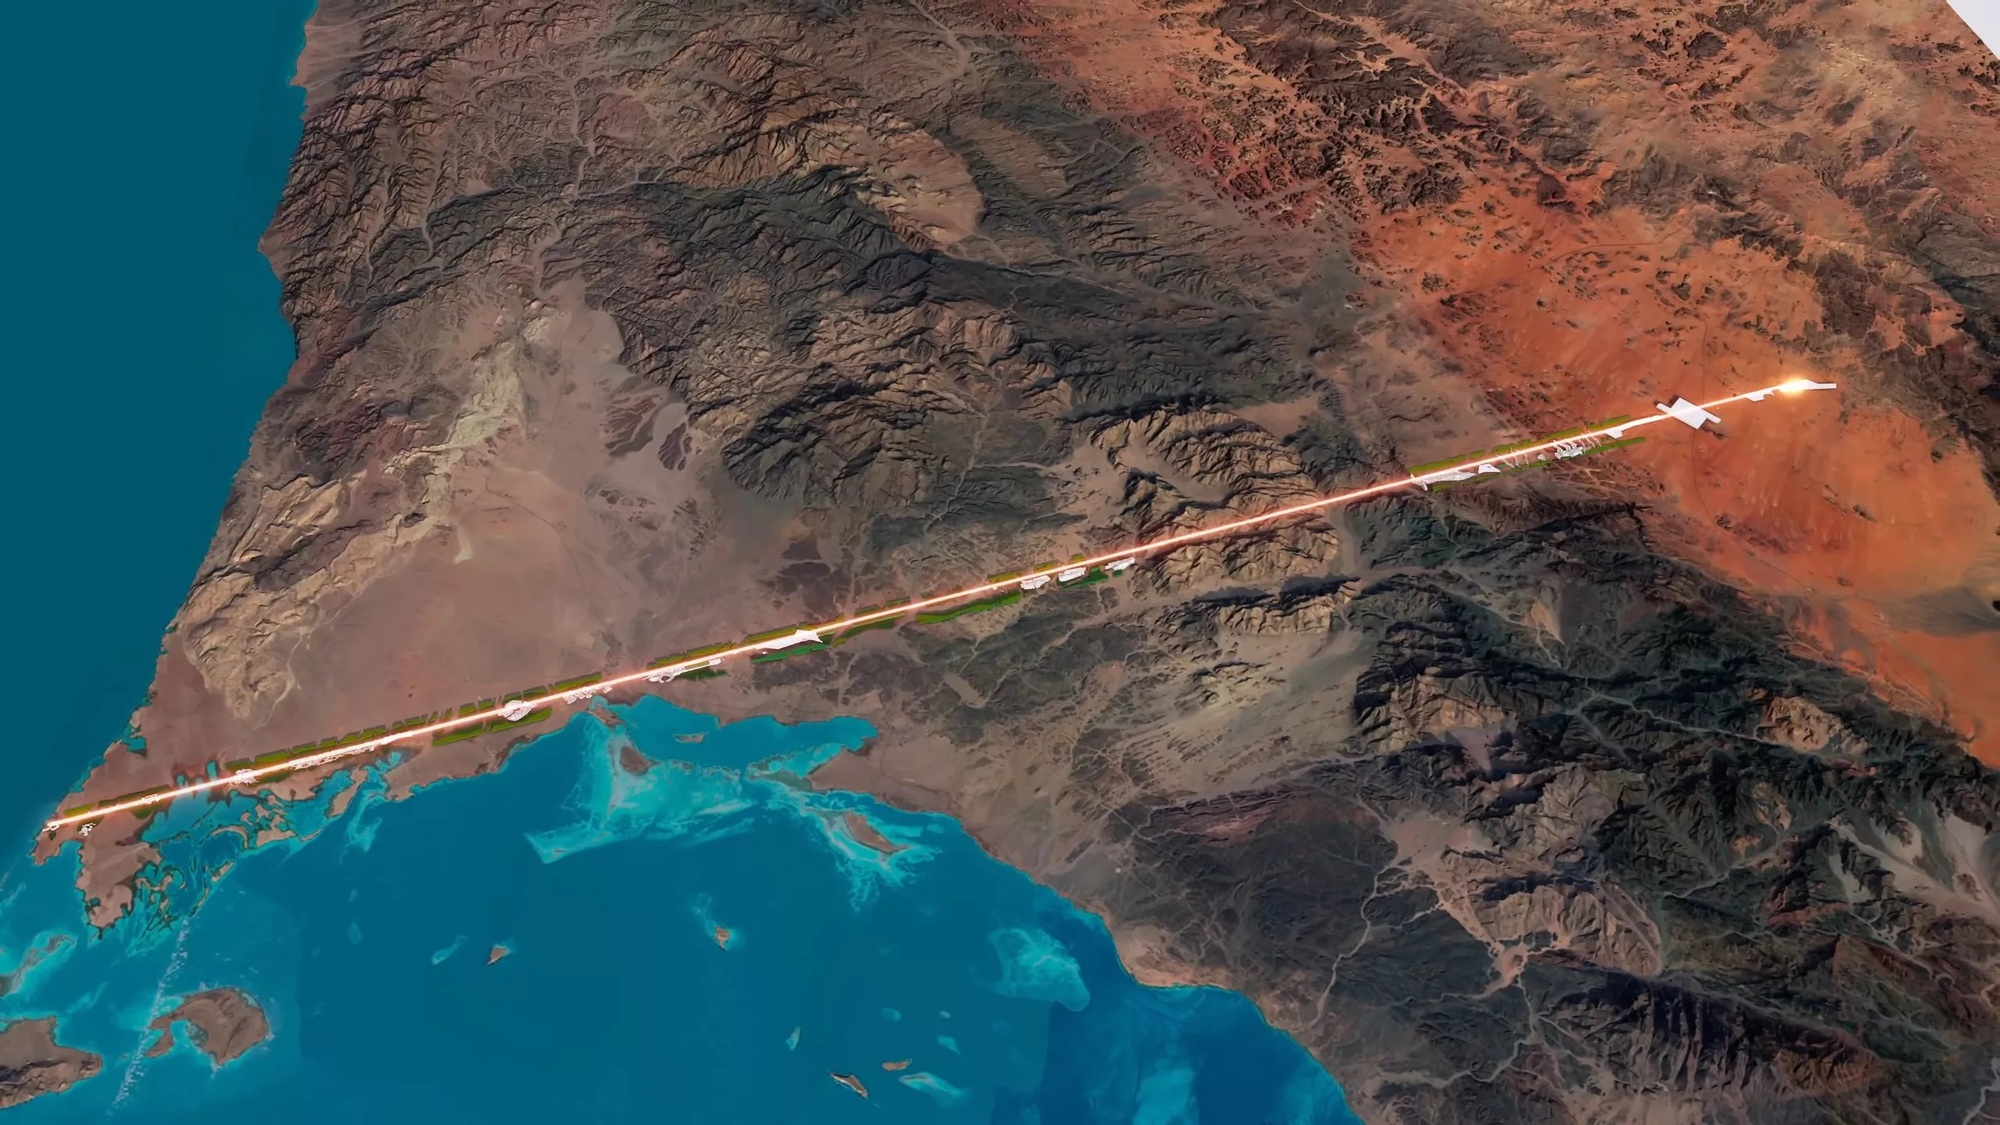 Saudi Arabia Unveils Plans for Hundred-Mile-Long Linear City | ArchDaily